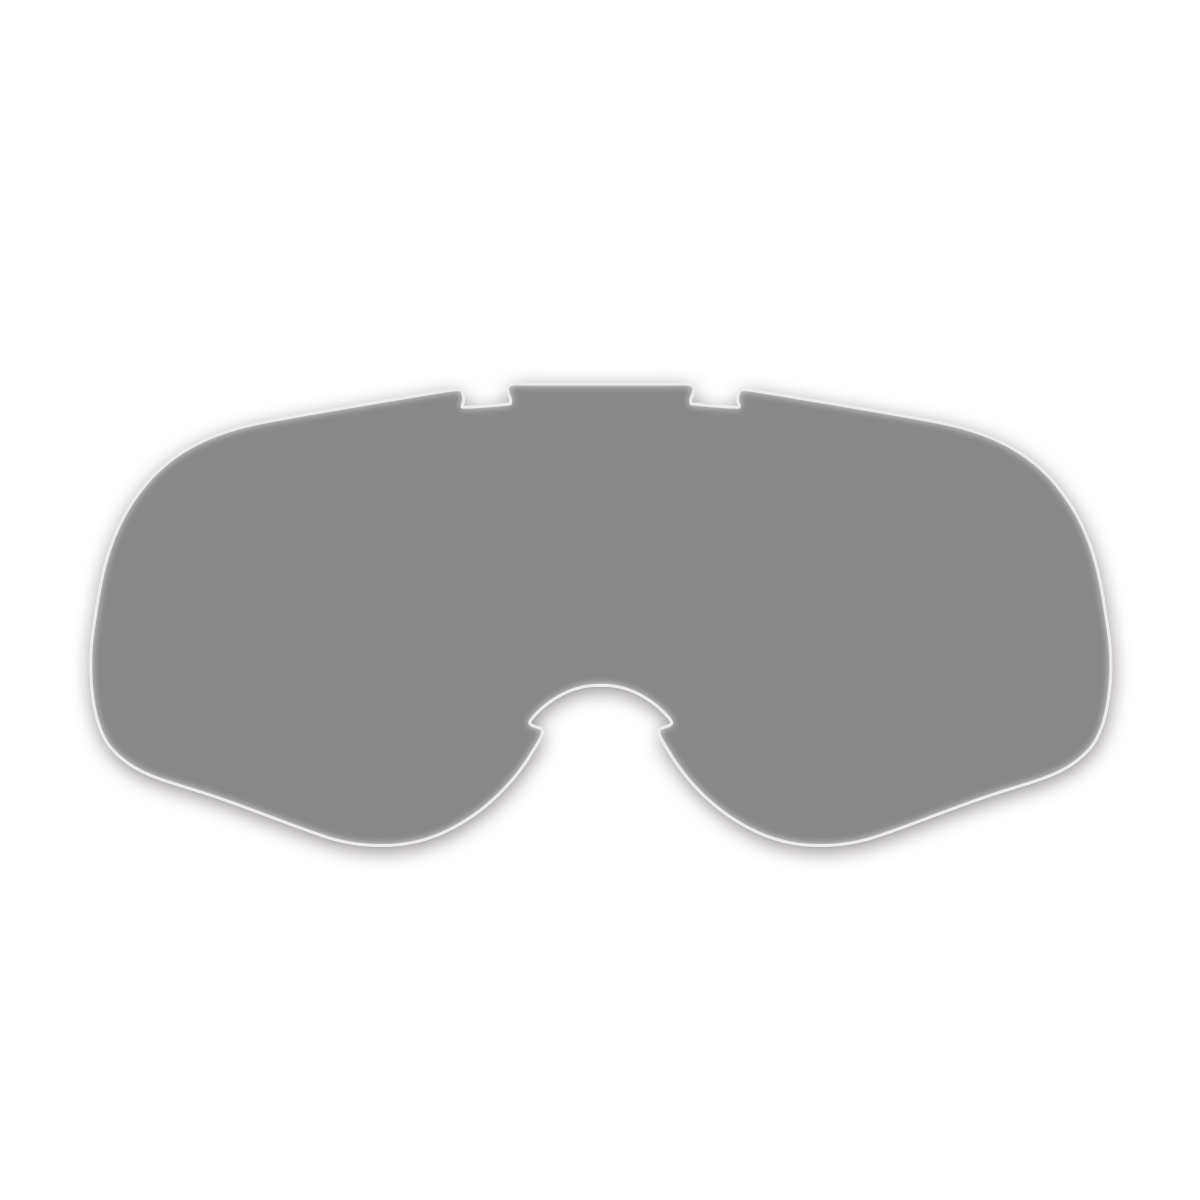 SINGLE LENS TRACTION GOGGLE REPAIR PARTS